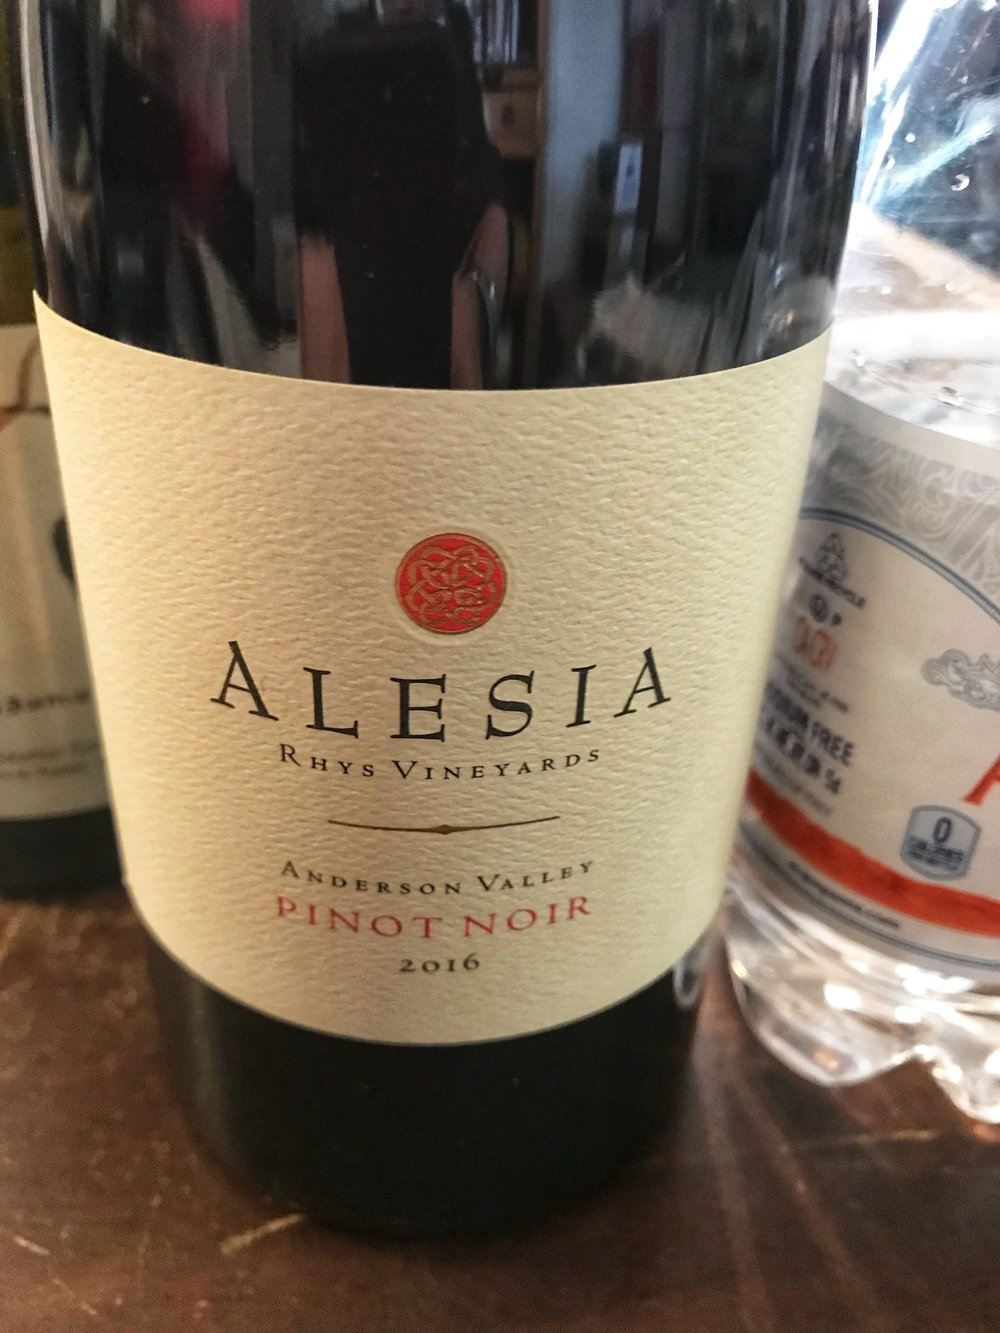 "2016 Rhys ""Alesia"" Pinot Noir, Anderson Valley: The Alesia label at Rhys Vineyards has made a re-appearance with an attractively-priced Pinot Noir and Chardonnay from the 2016 vintage. As Rhys Vineyards in years-past waited for their estate vineyards to come into production, they had reserved the Alesia label to bottle wines made from purchased fruit. But this 2016 Anderson Valley bottling is made entirely from estate vines that will one day be bottled under the Rhys label or likely even Bearwallow Vineyard. $49.99"